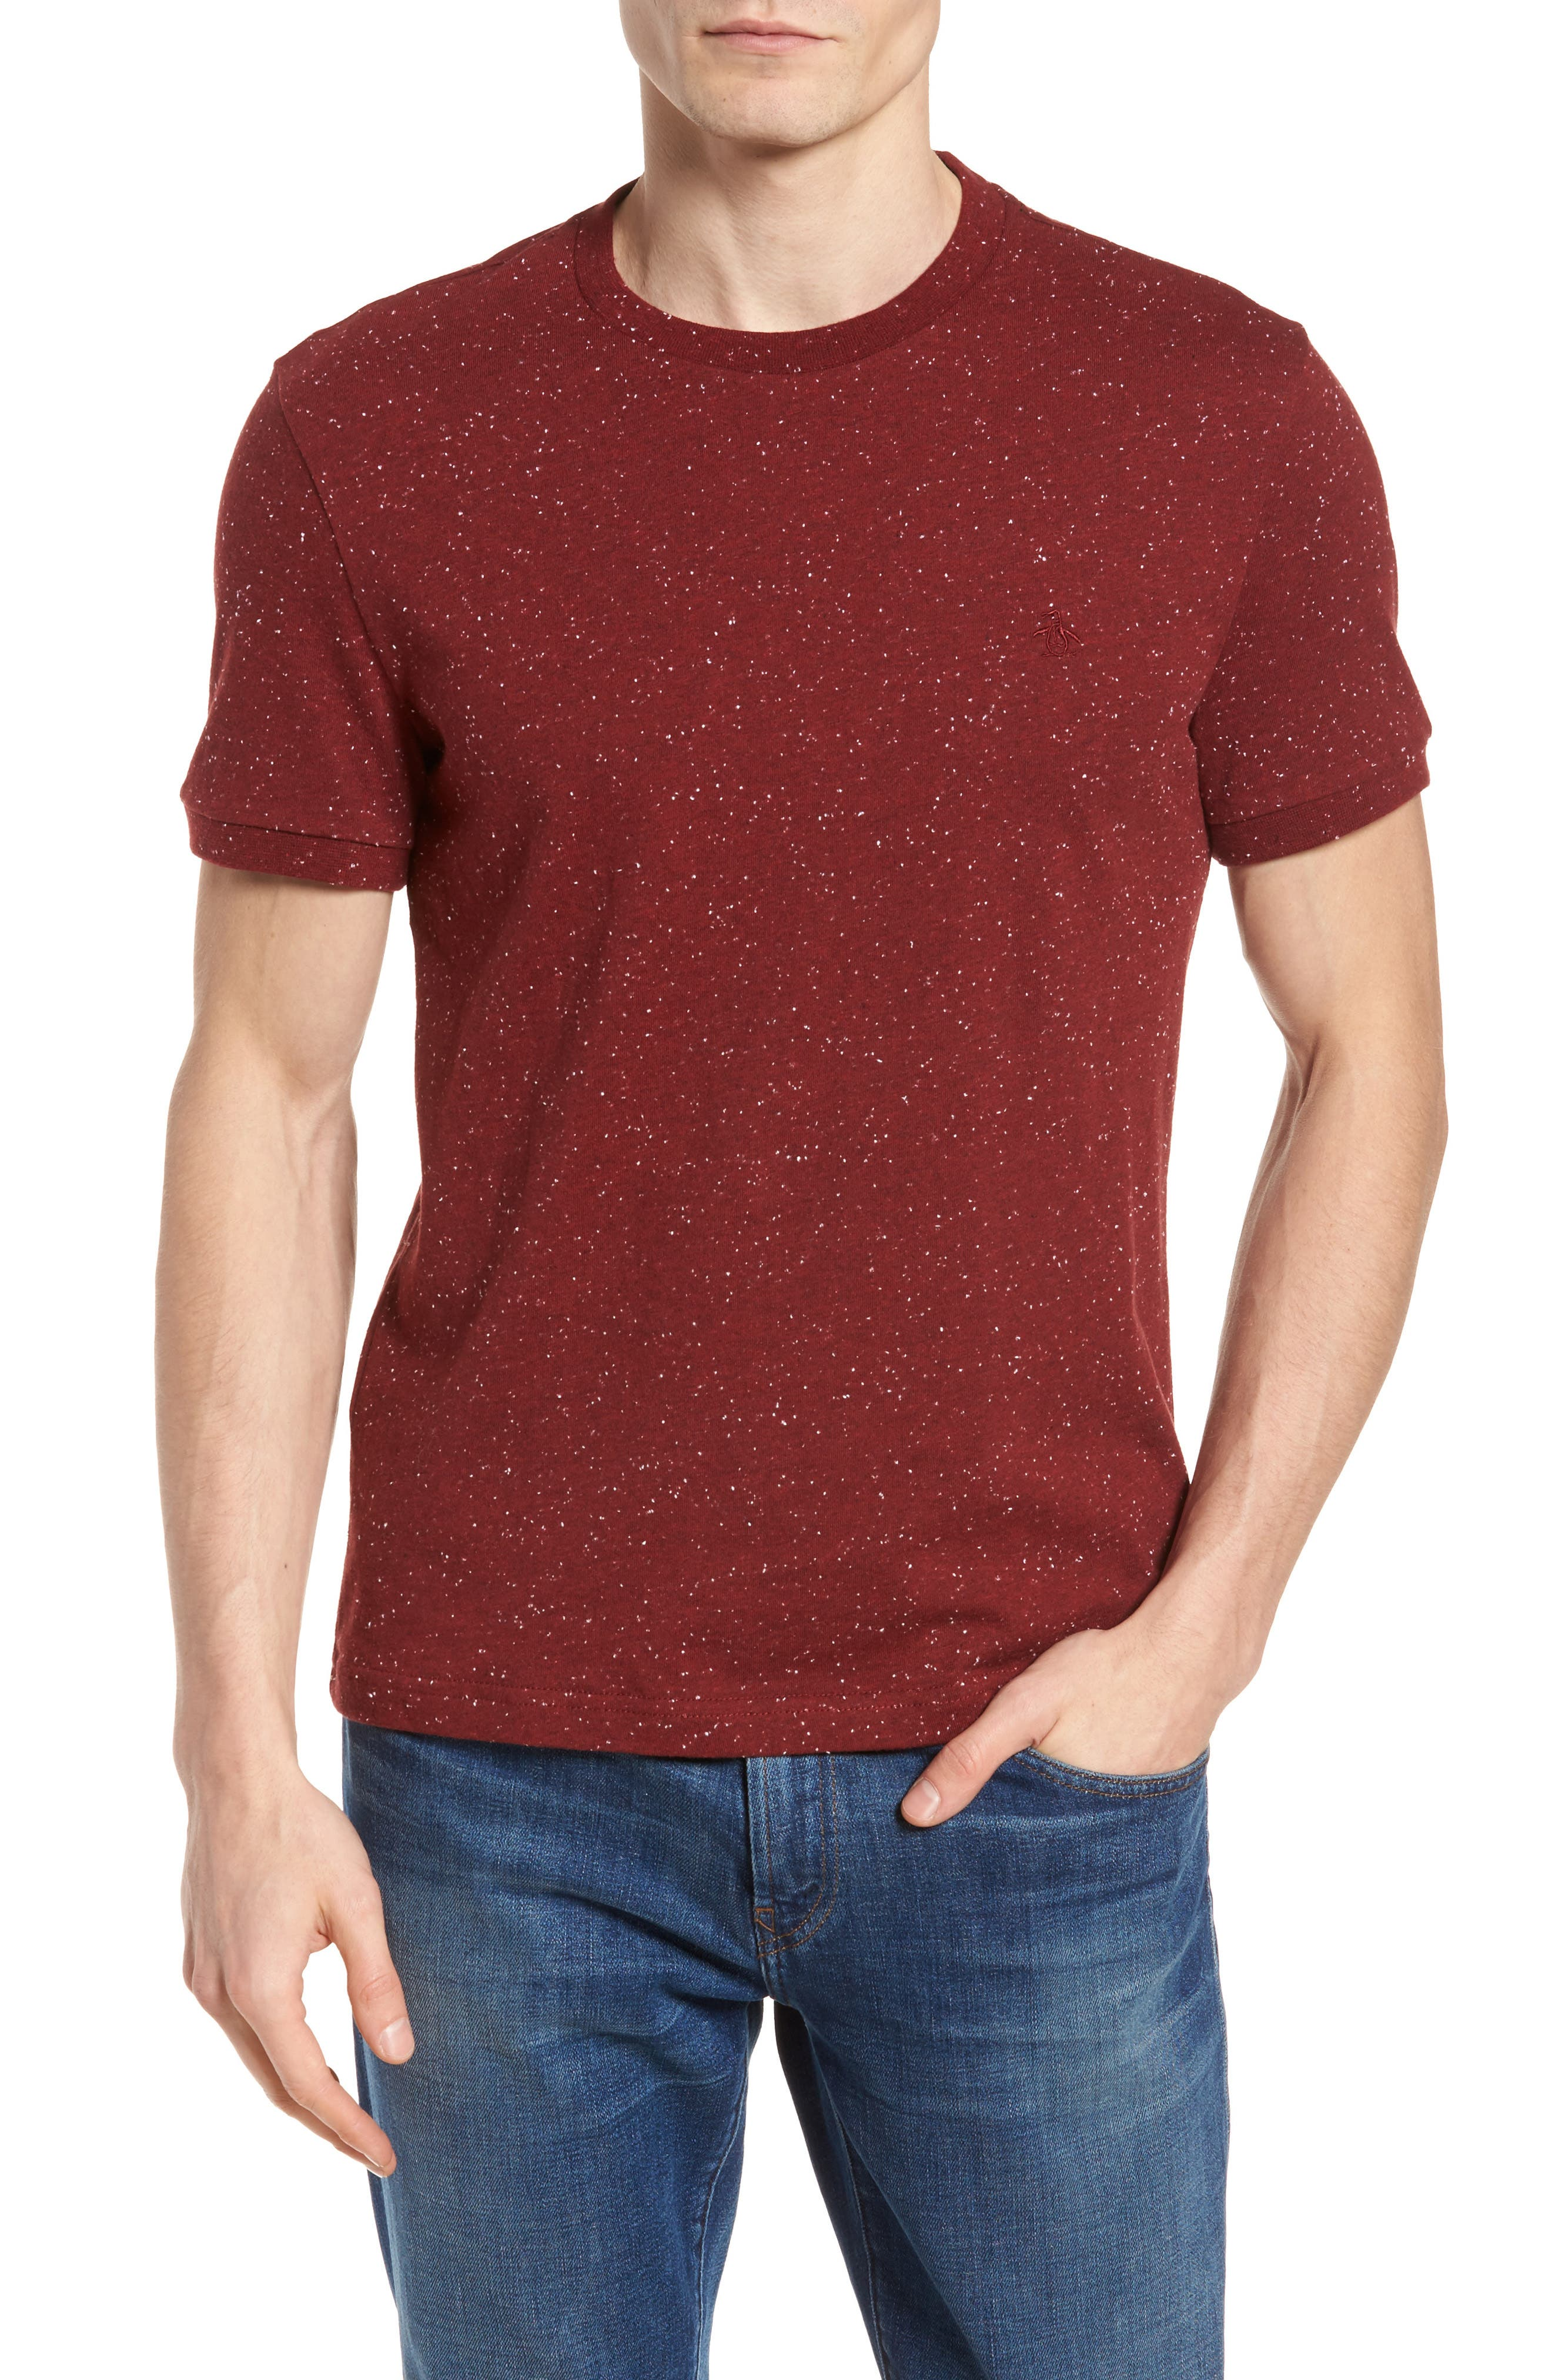 Nep Speckled T-Shirt,                             Main thumbnail 3, color,